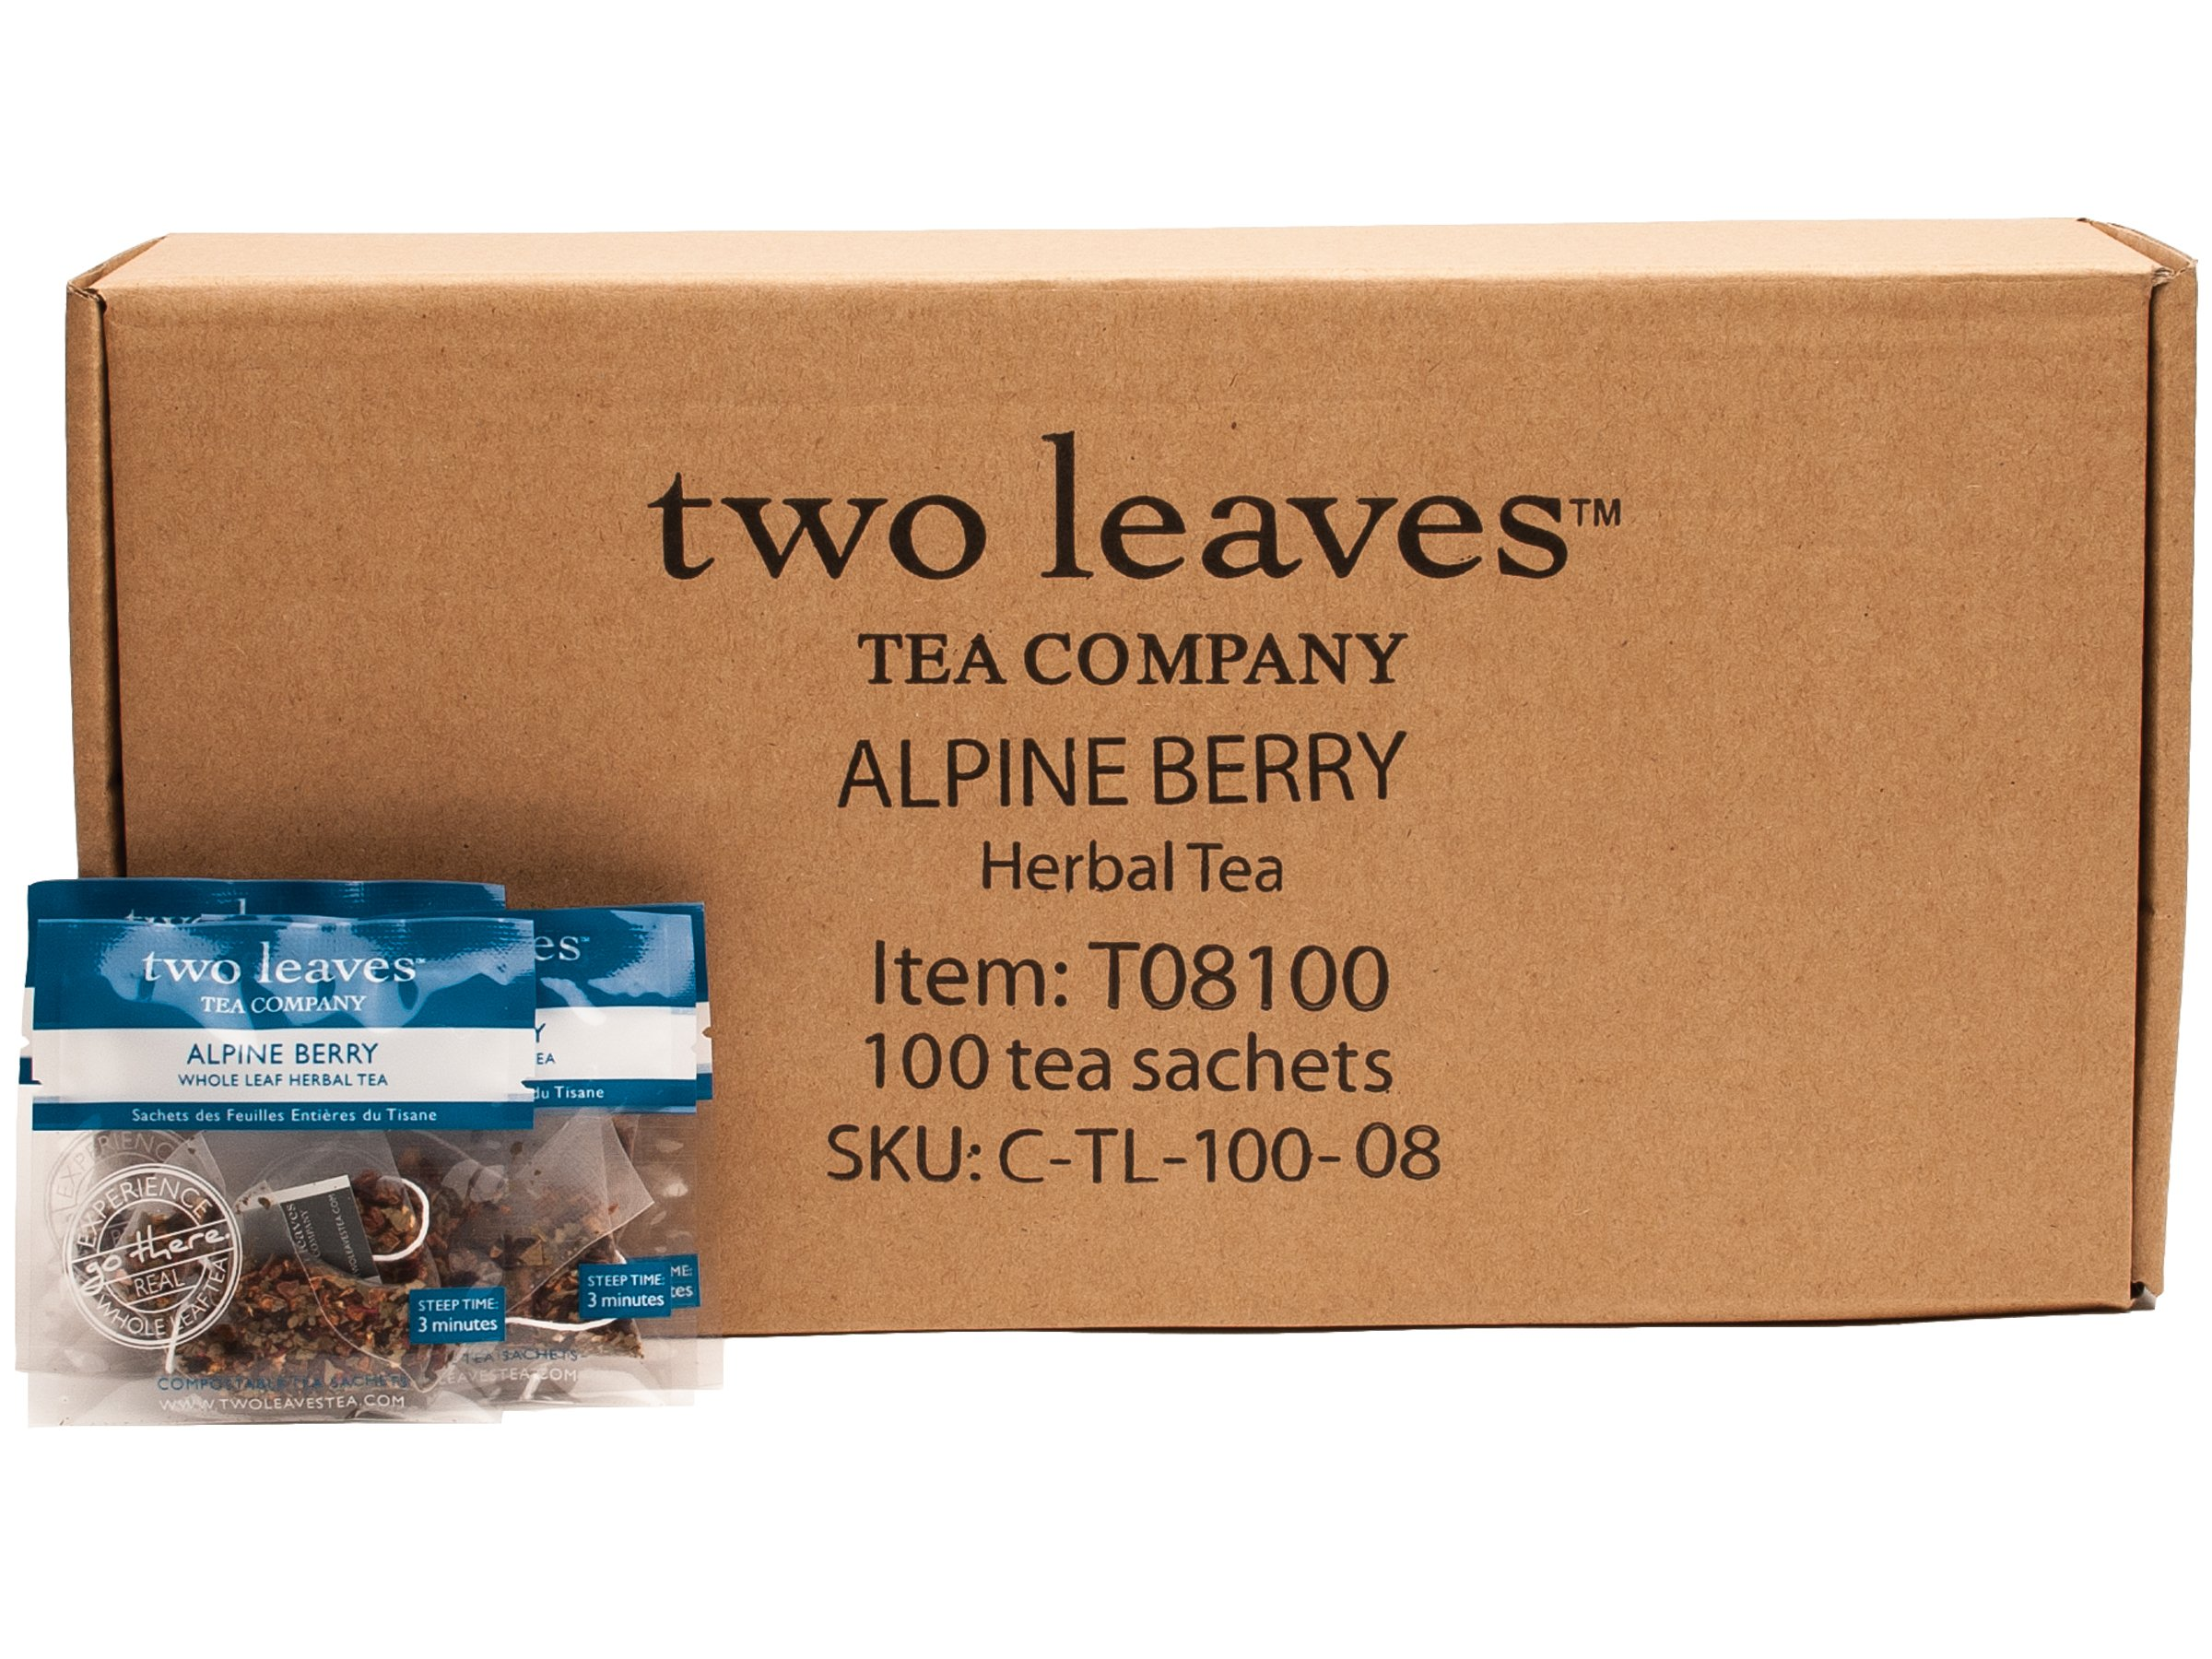 Two Leaves and a Bud Alpine Berry Herbal Tea Bags, 100 Count, Whole Leaf Caffeine Free Herbal Tea in Pyramid Sachet Bags, Delicious Hot or Iced with Milk, Sugar, Honey or Plain